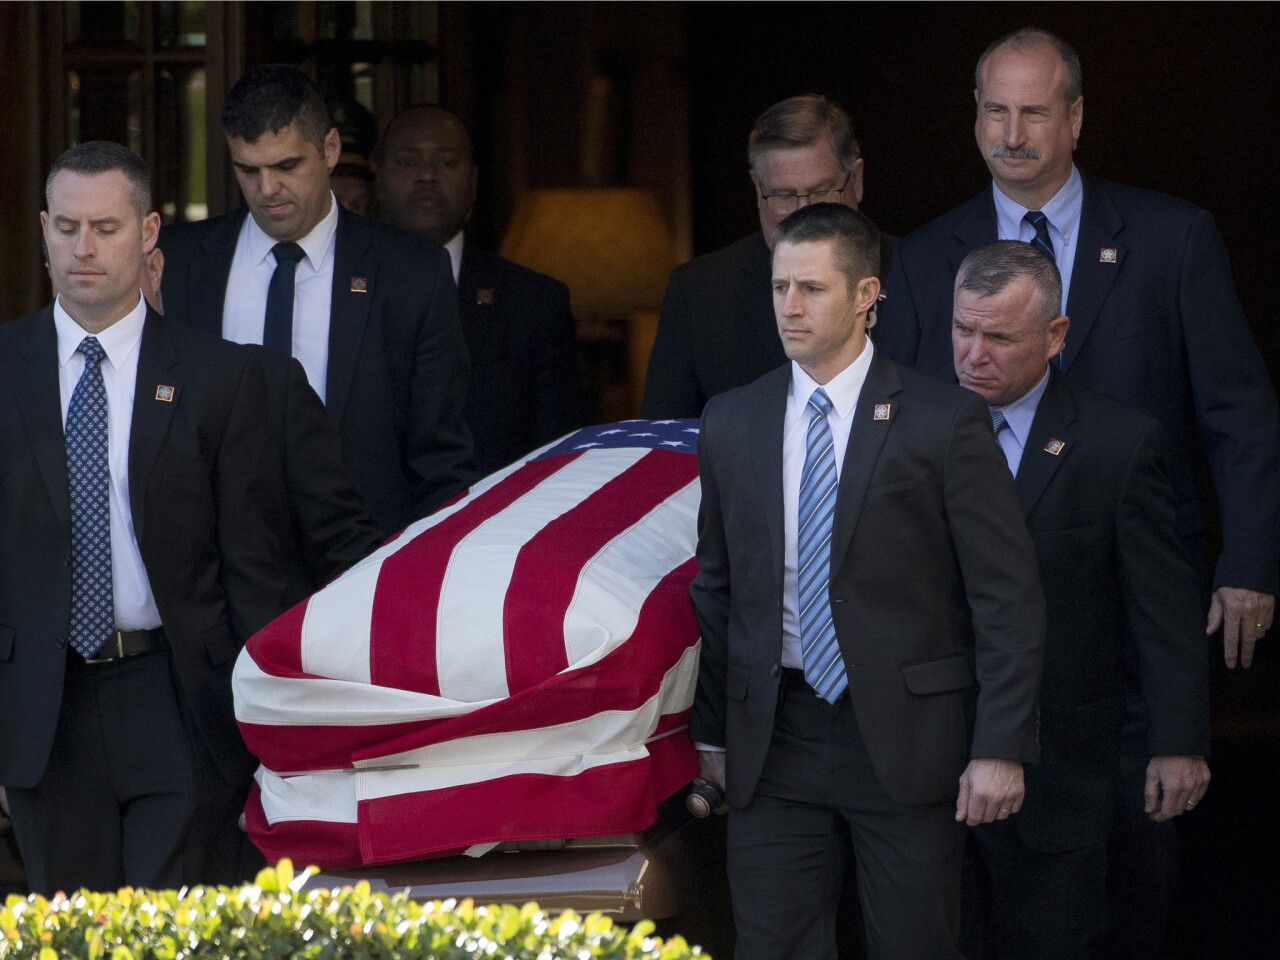 Four-day mourning period begins for George H. W. Bush